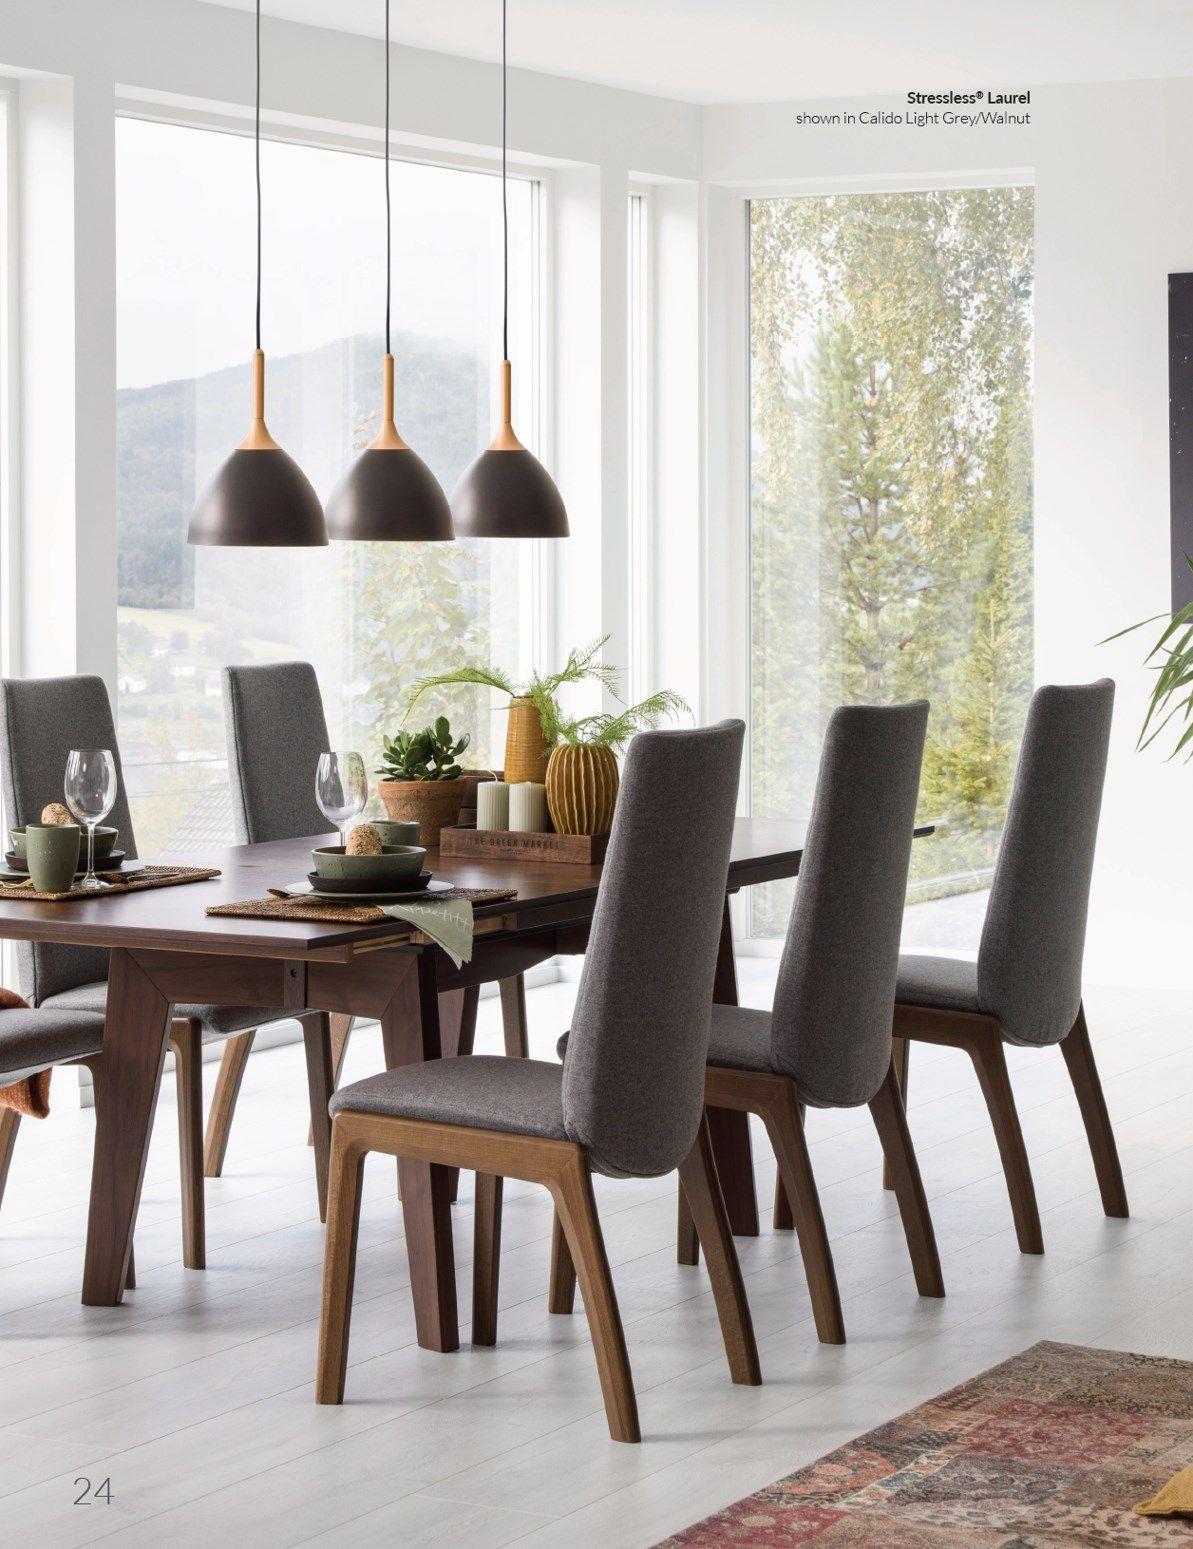 37++ Stressless dining table and chairs Various Types